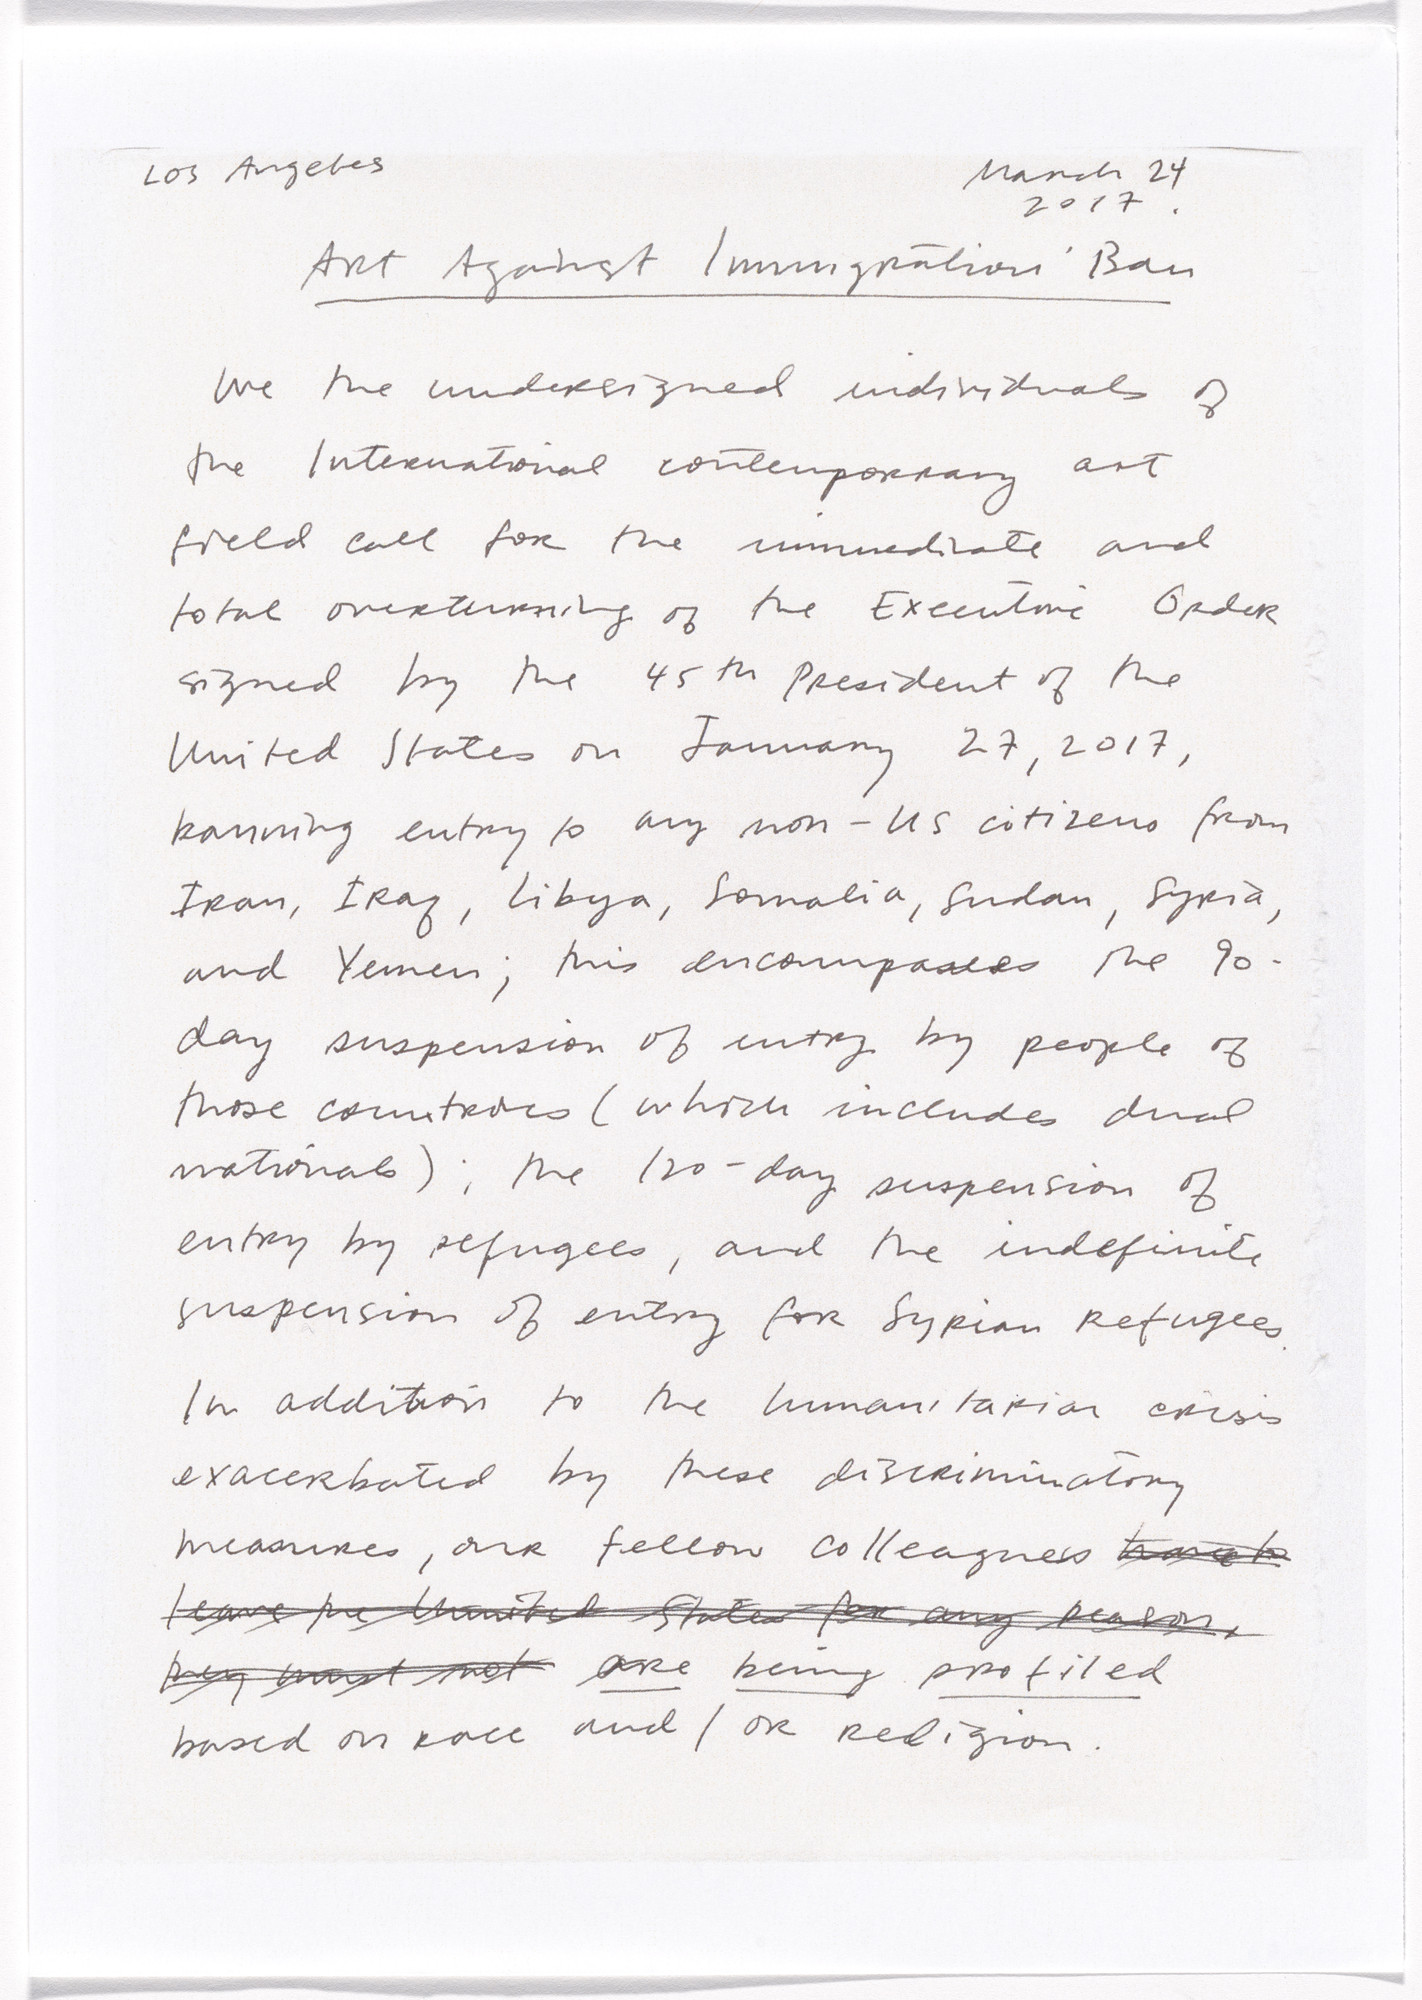 Julie Mehretu. Untitled from Art Against Immigration Ban Letter Portfolio. 2017